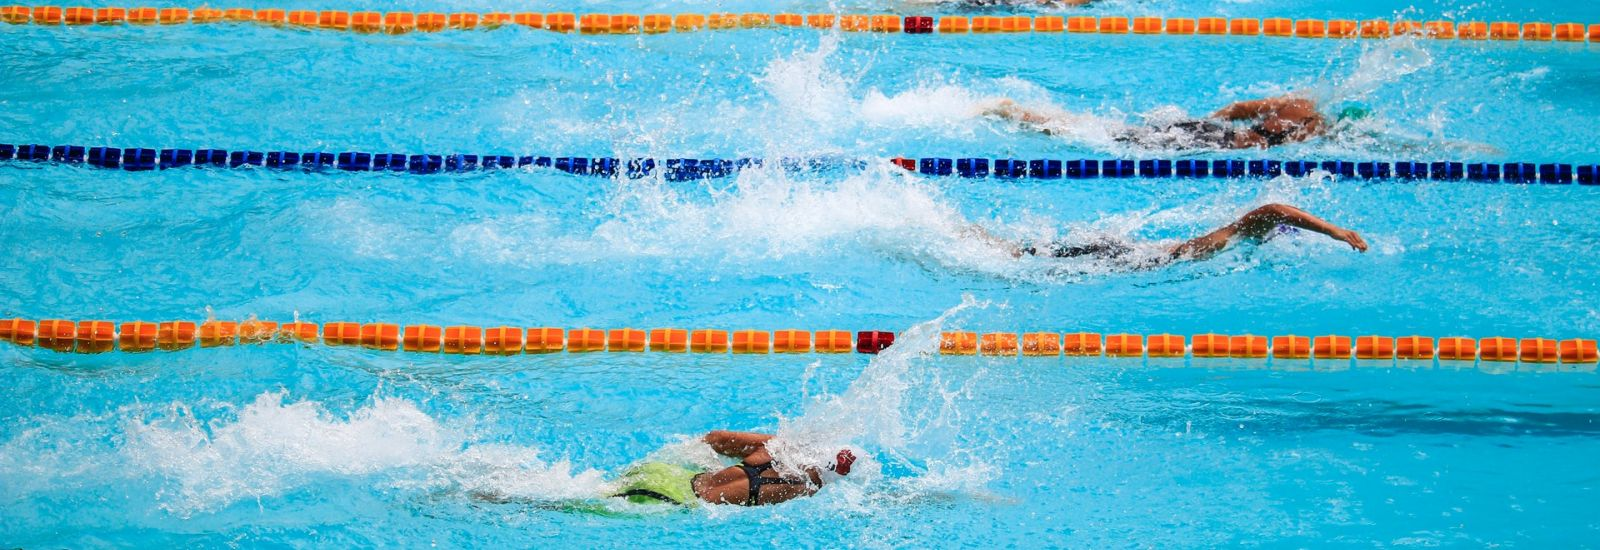 Swimmers competing in a pool.